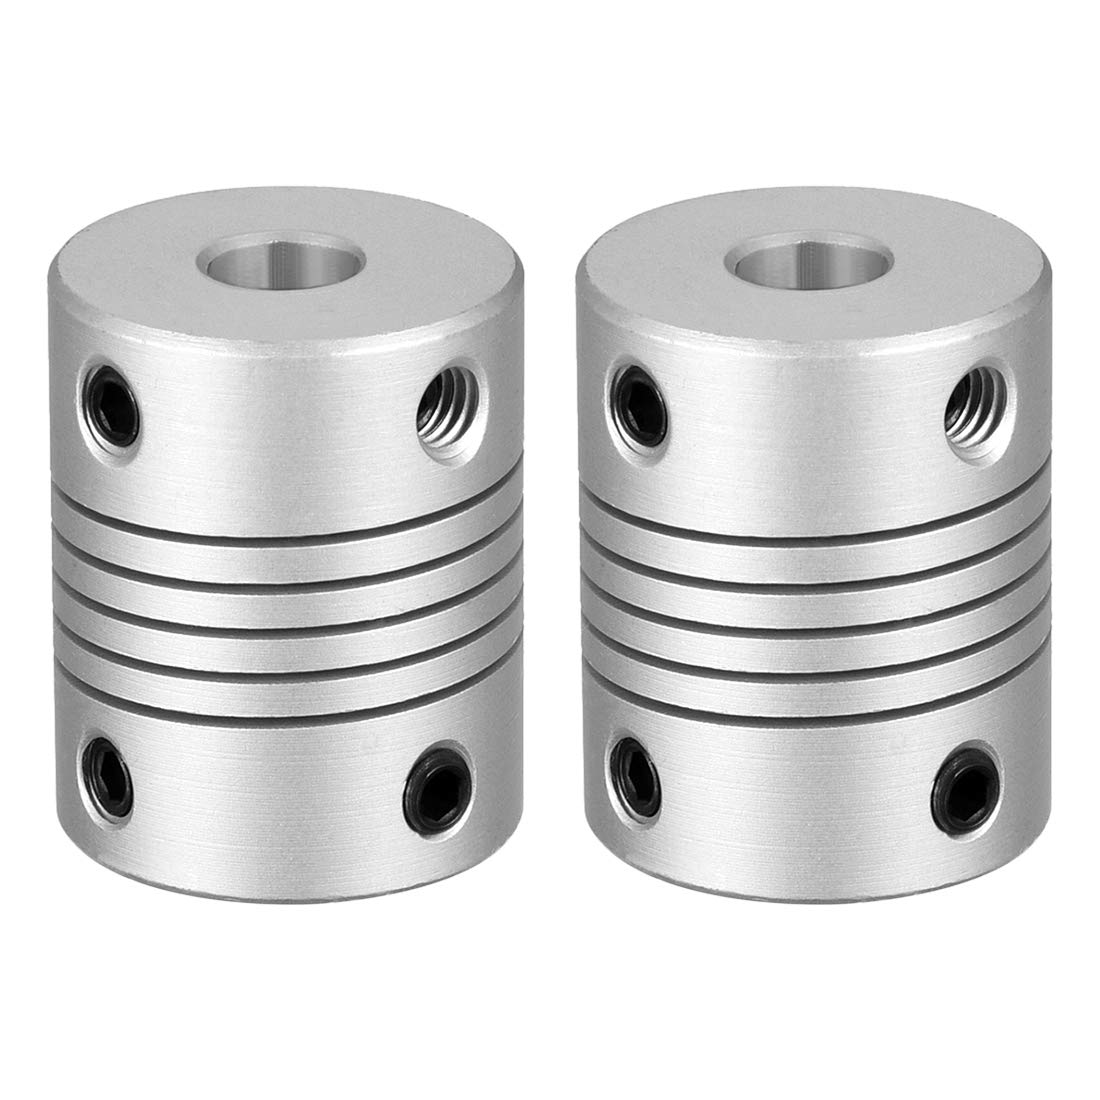 sourcing map 2pcs 5mm to 6mm Aluminum Alloy Shaft Coupling Flexible Coupler Motor Connector Joint L25xD19 Silver